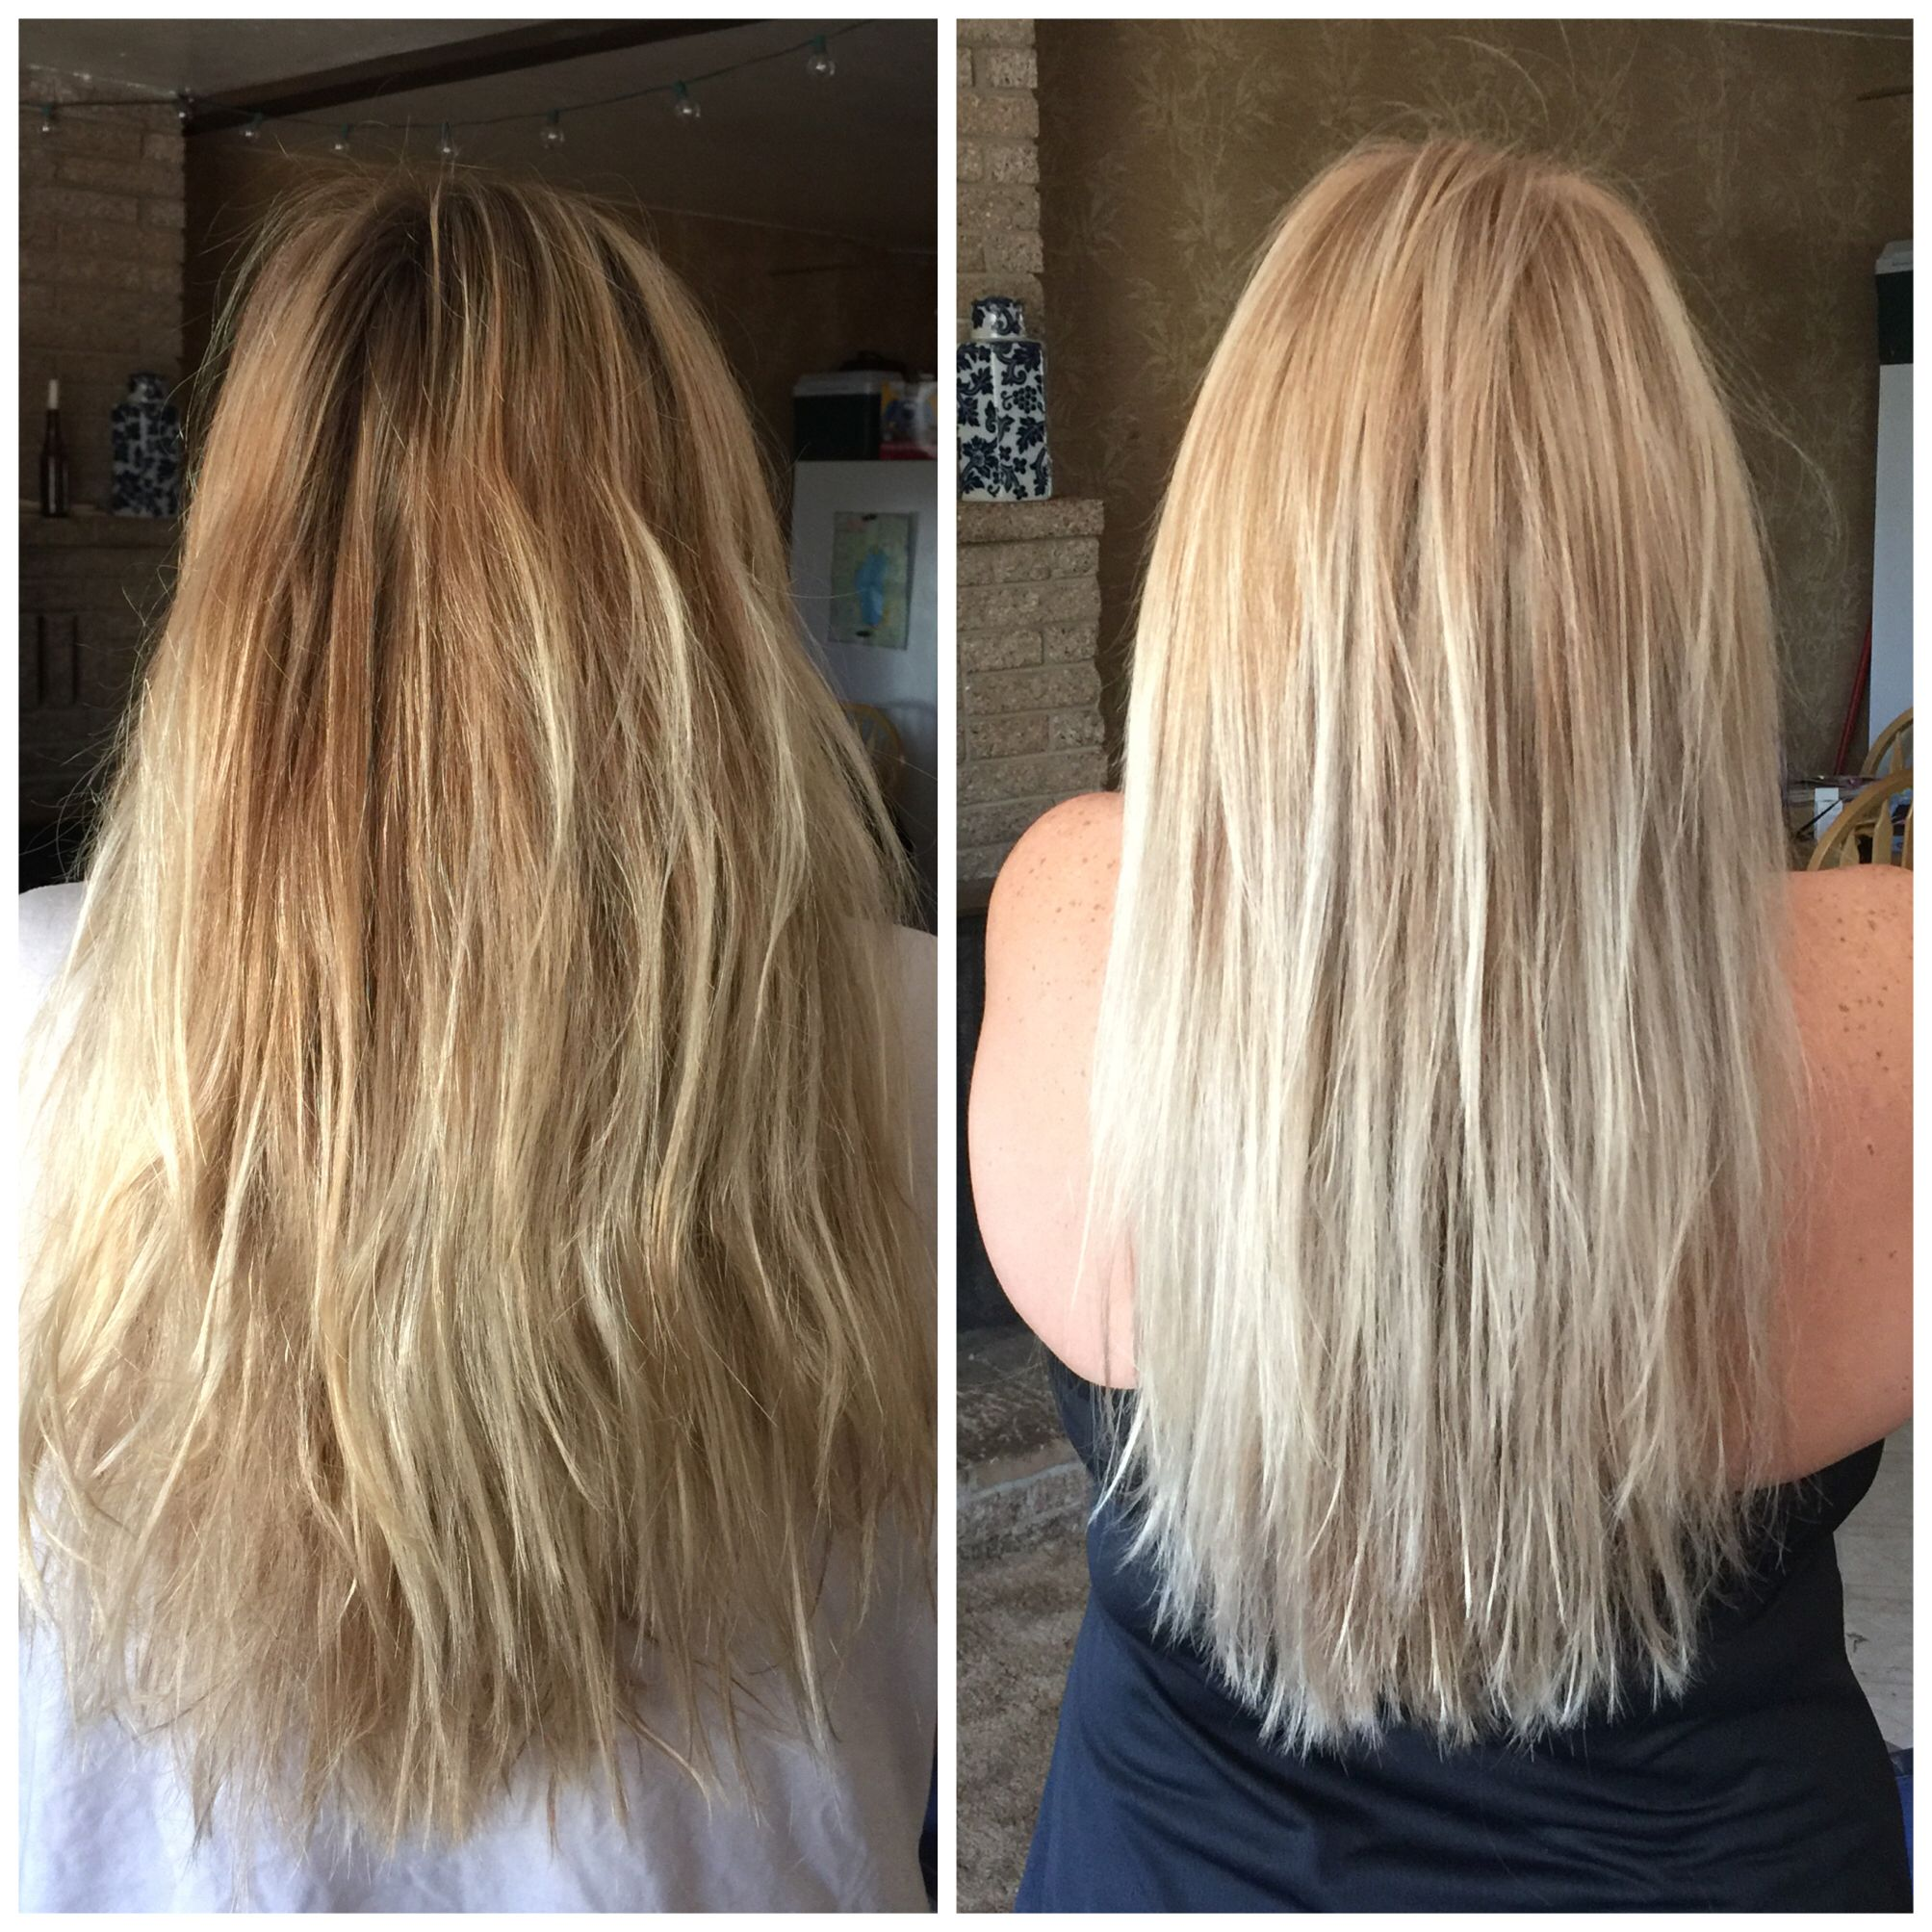 Before And After Toning My Own Hair With Wella Toner T18 And Volume